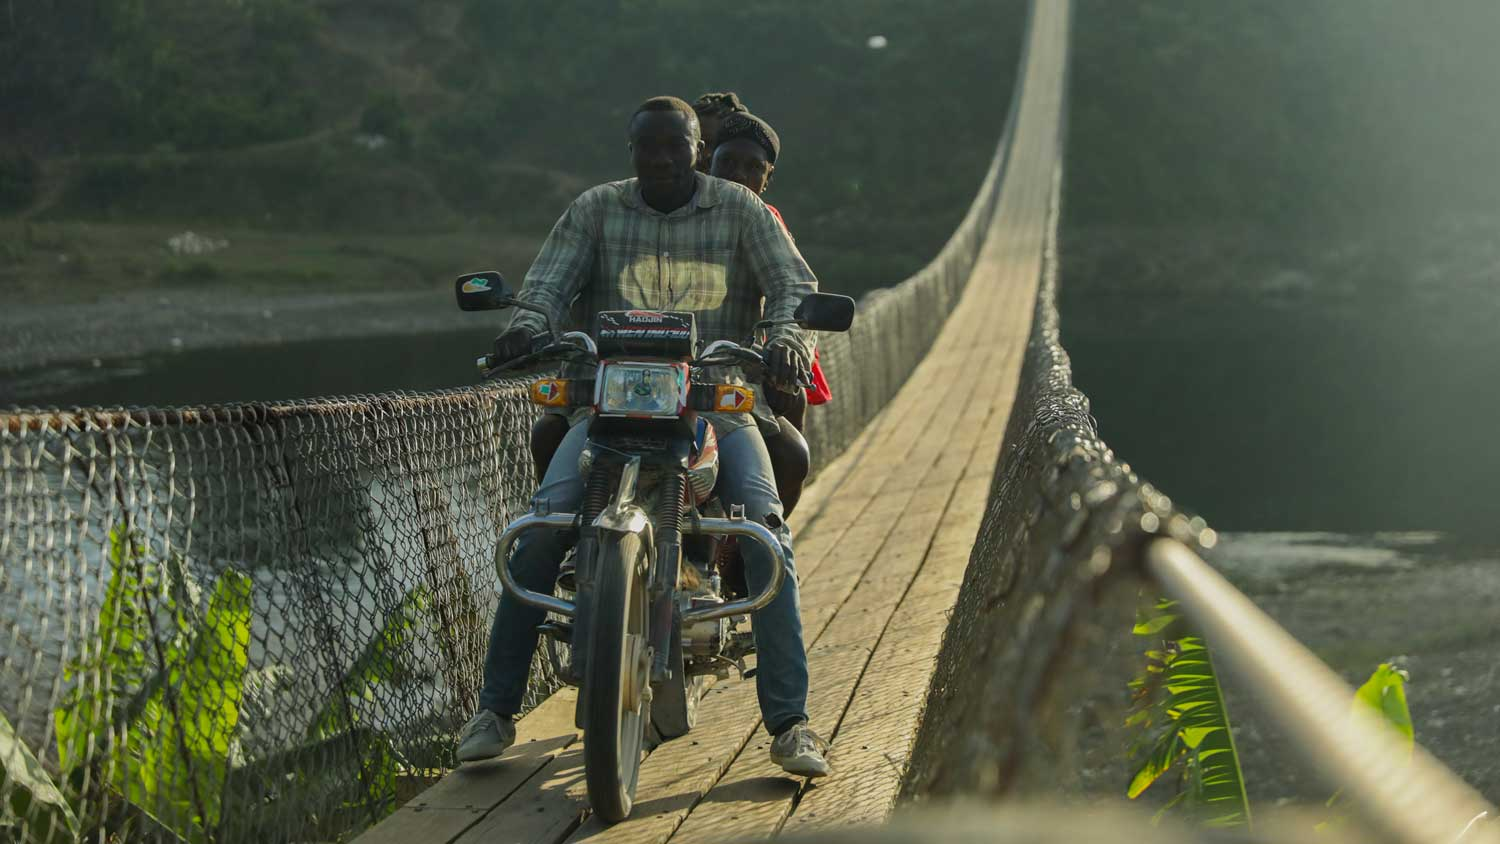 Moto driver crossing suspension bridge in Haiti